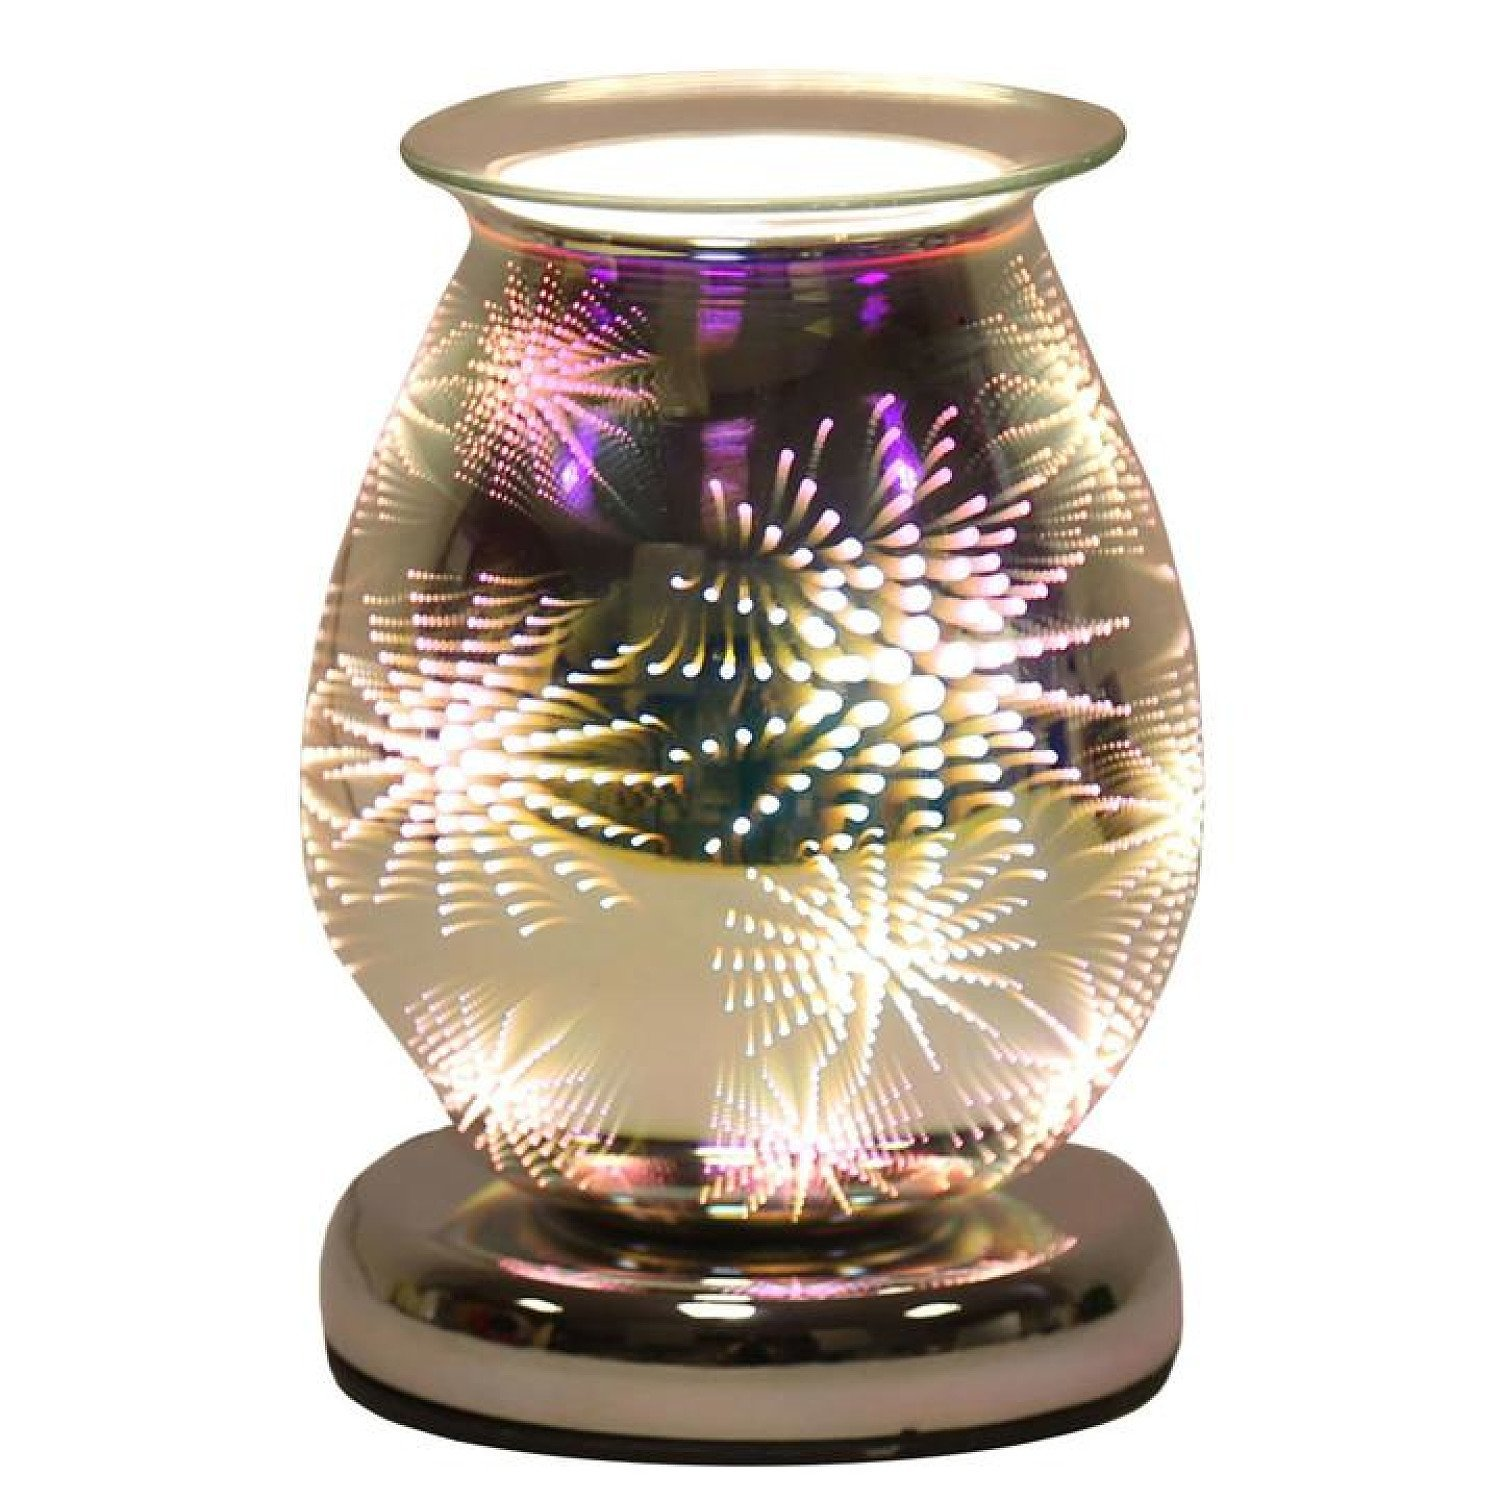 Firework - Oval) Oval 3D Lights Scented Aroma Wax Burner Electric Touch Lamp